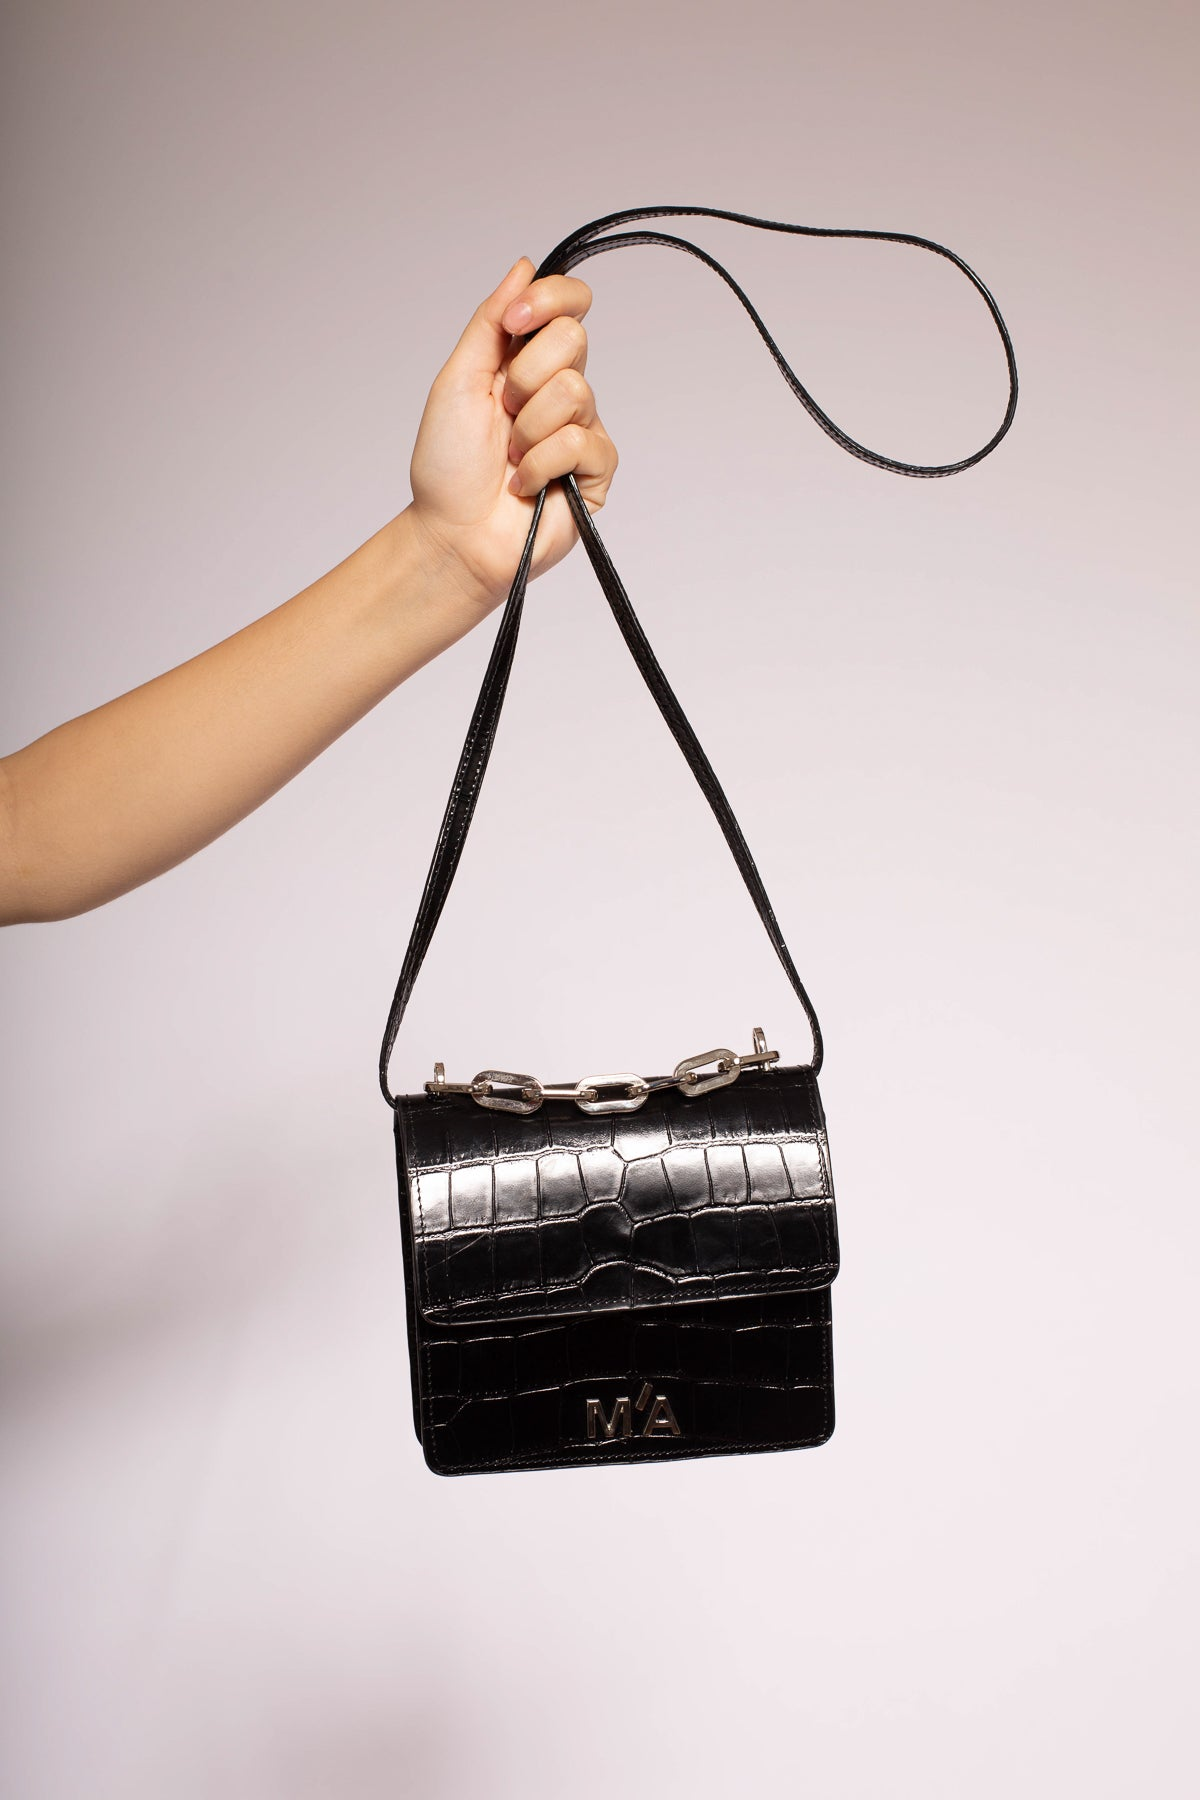 MINI CHAIN BAG IN BLACK - marques-almeida-dev